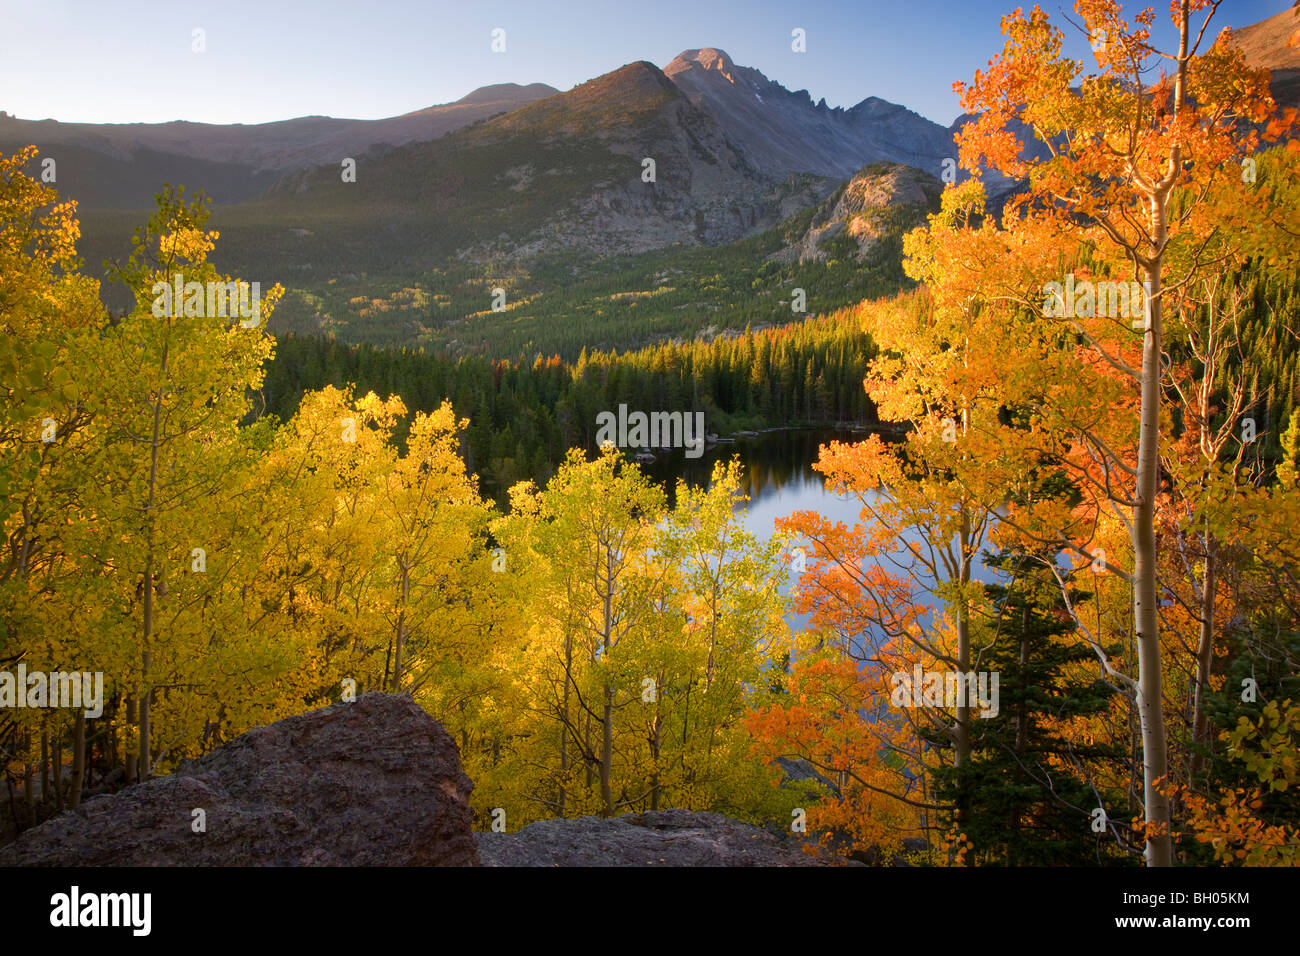 Autumn colors at Bear Lake, Rocky Mountain National Park, Colorado. - Stock Image